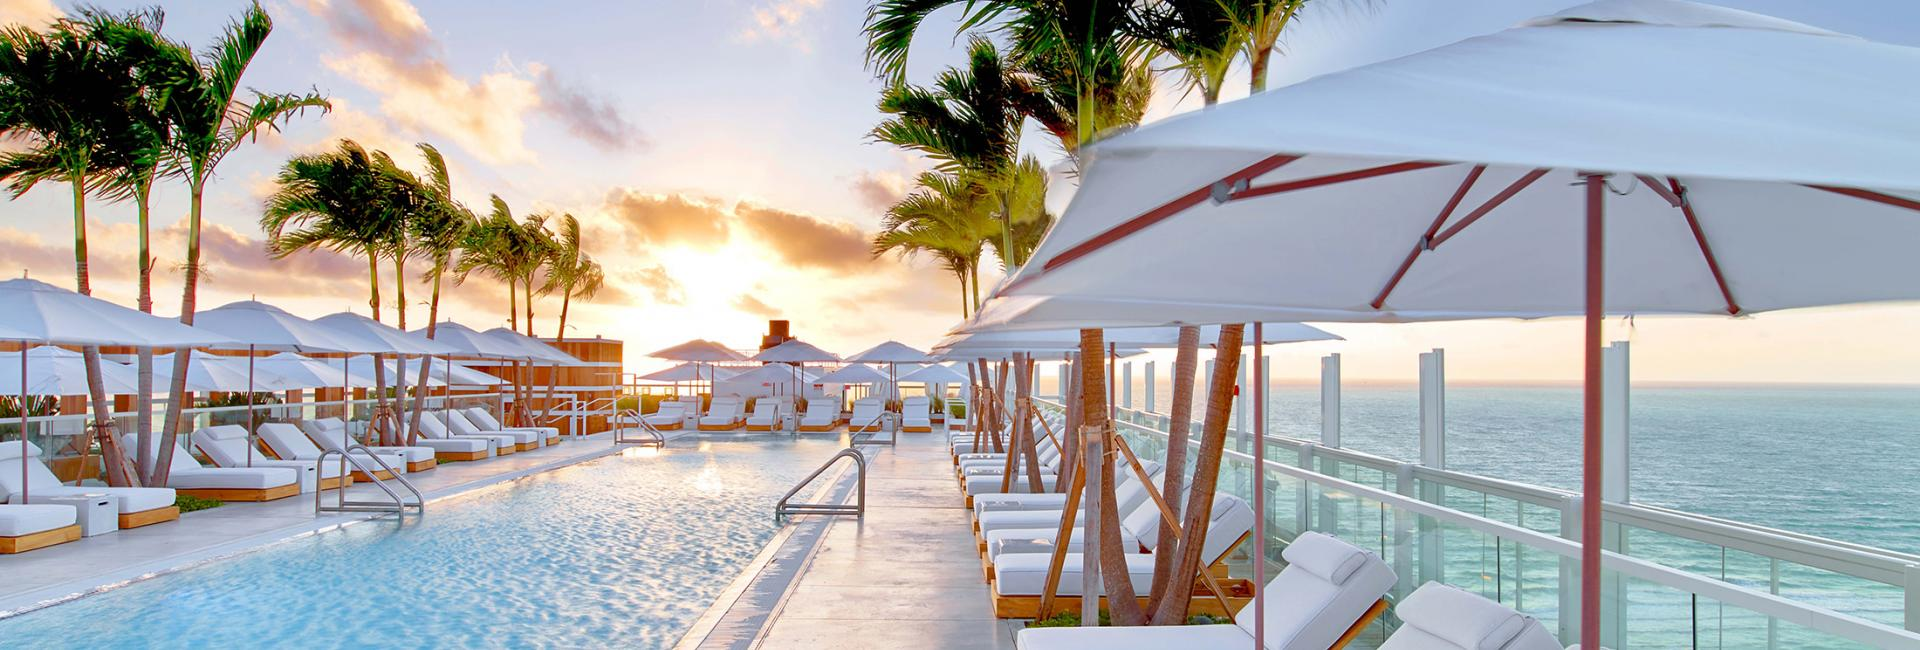 The sun rising over the pool and white lounge chairs at 1 Hotel South Beach.